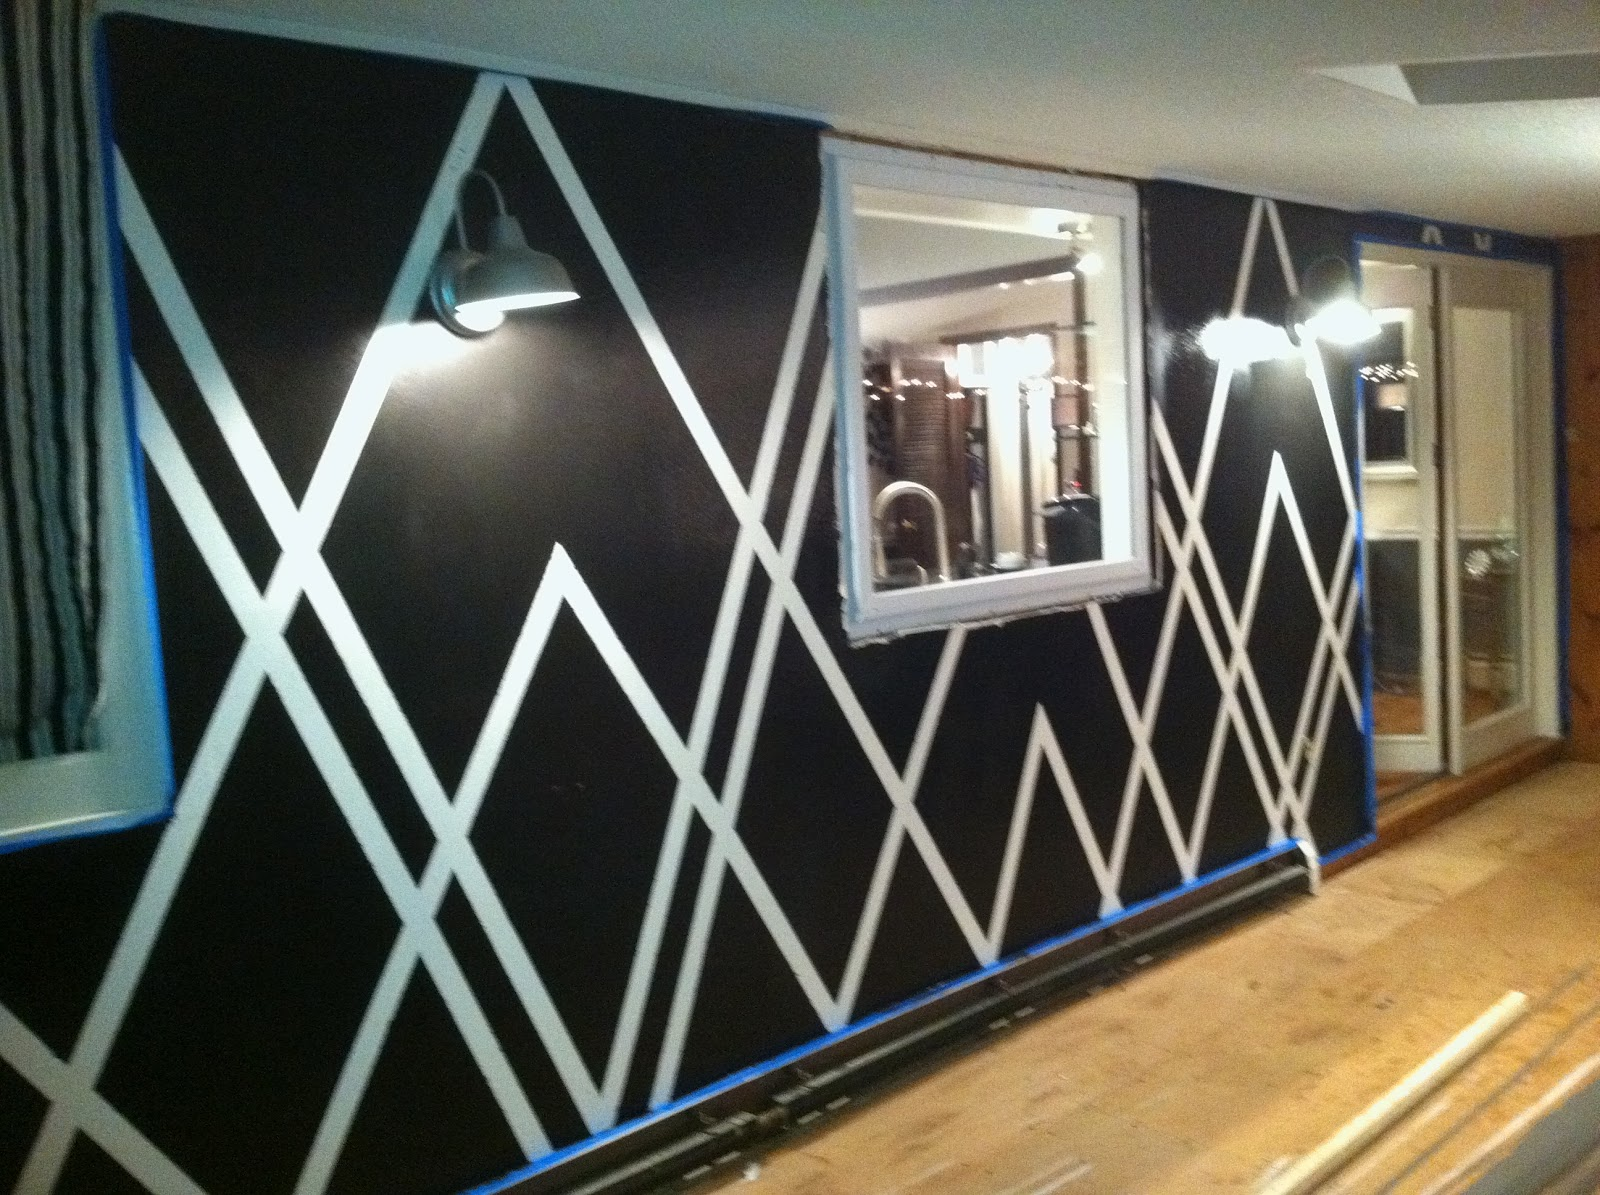 Decor4poor painters tape design wall Painting geometric patterns on walls